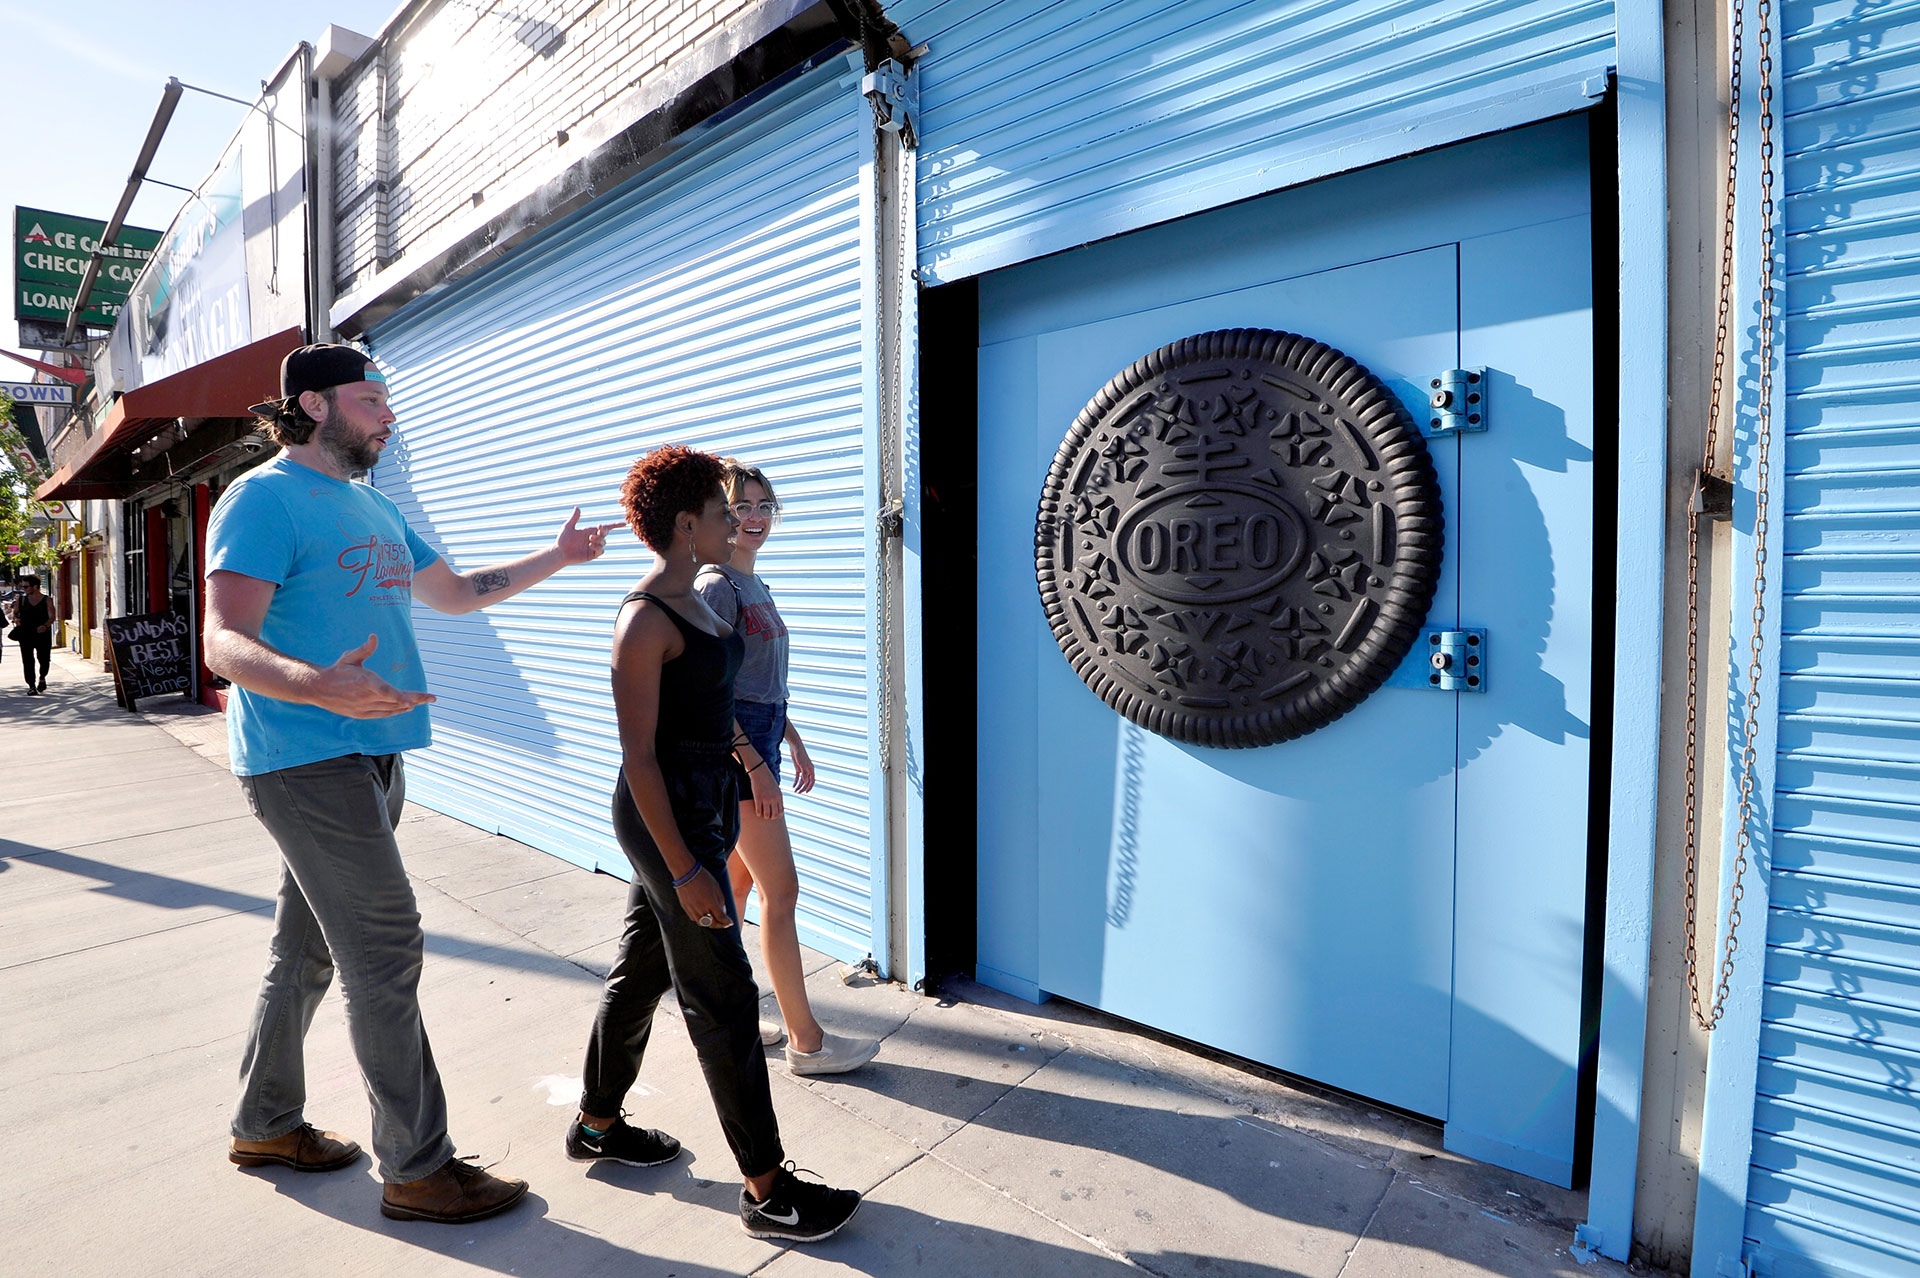 Mysterious Oreo Storefront - Photo Courtesy of Marketing-Interactive.com